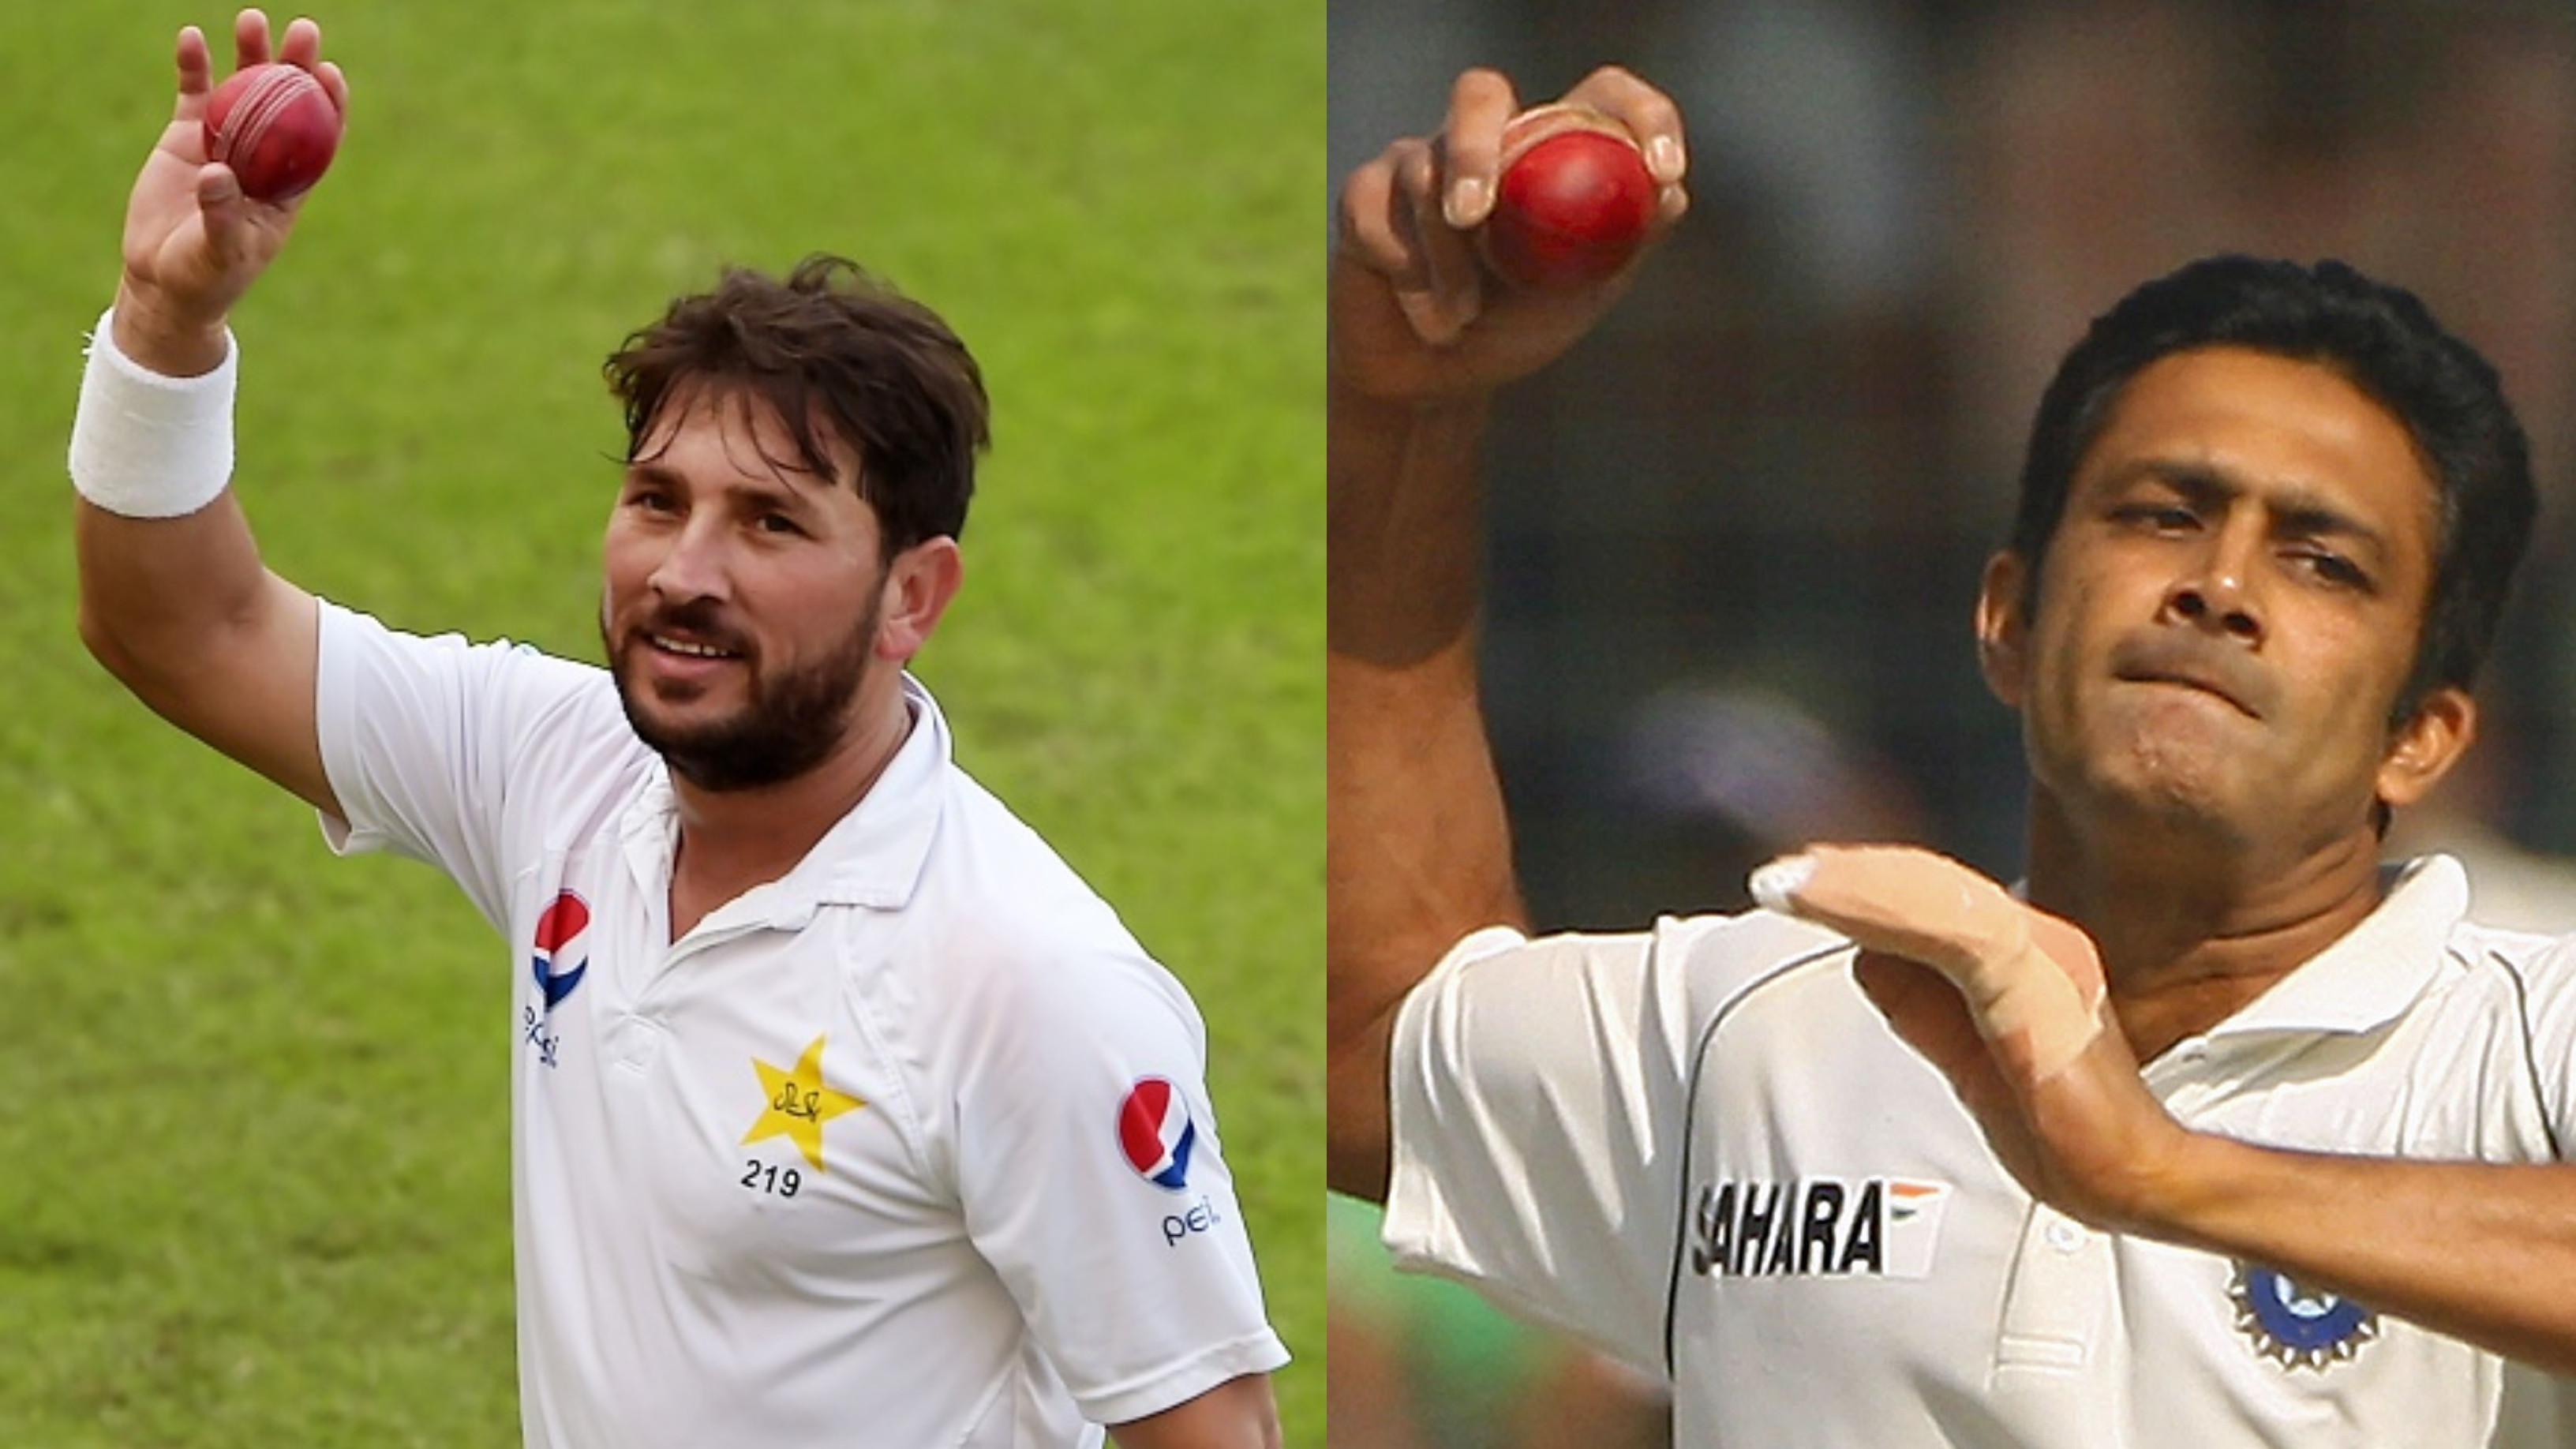 PAK v NZ 2018: Yasir Shah emulates Anil Kumble in Dubai, sets sights on long-standing record in Test cricket